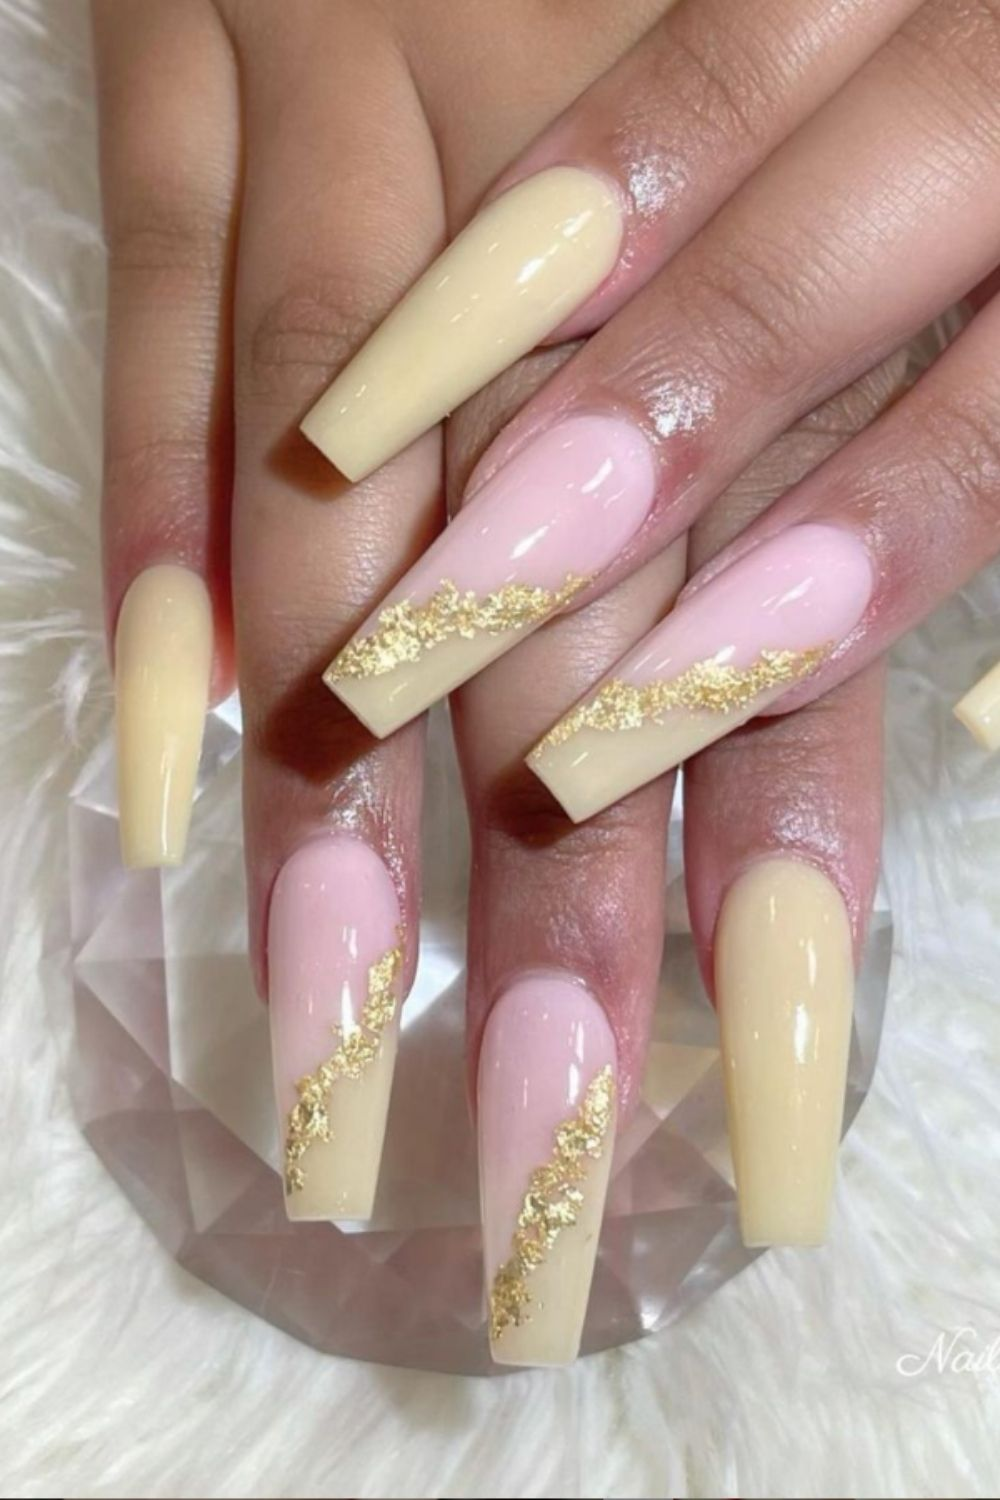 Glitter and yellow coffin nail designs